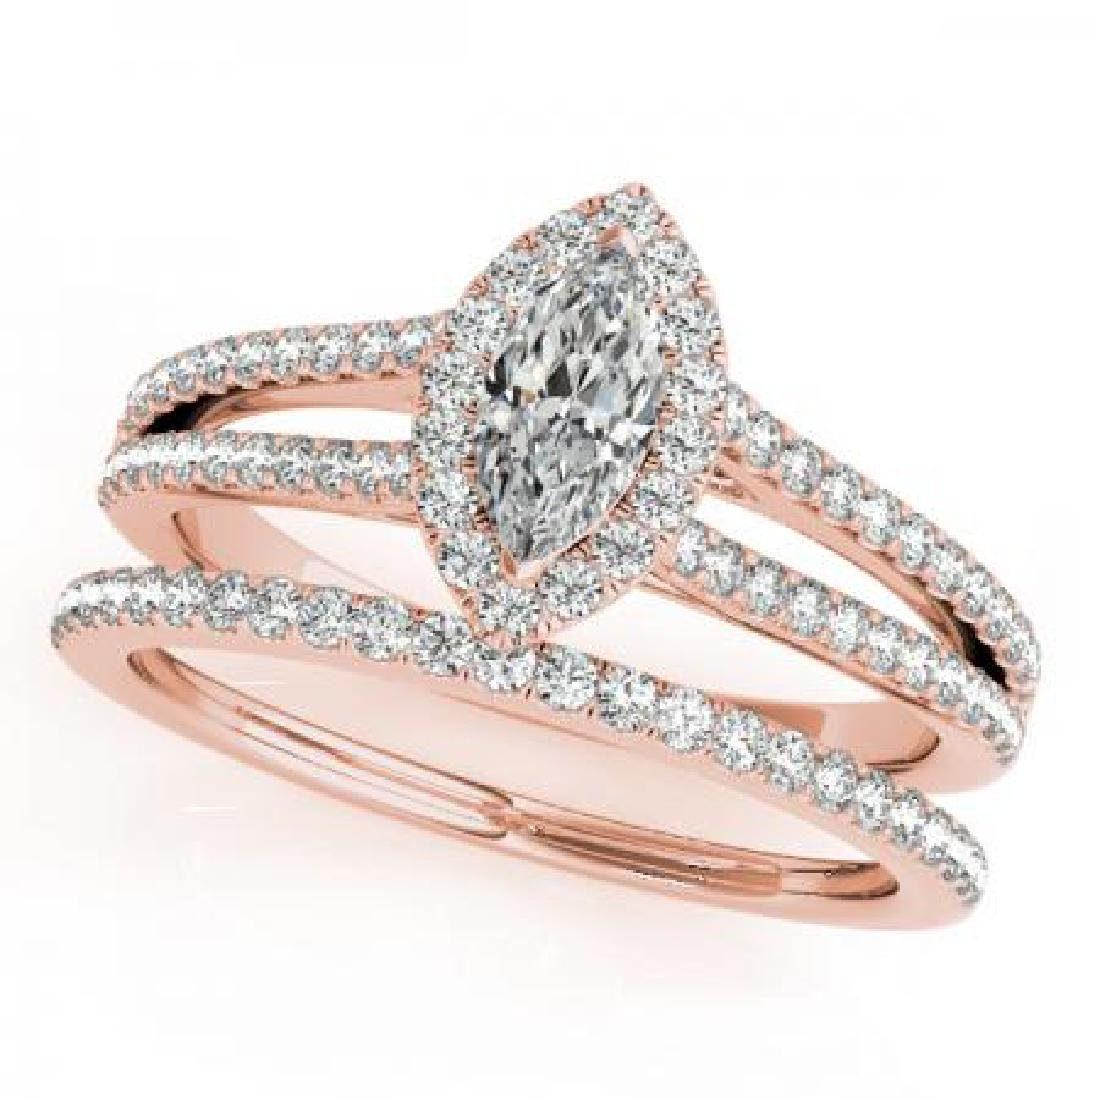 CERTIFIED 14KT ROSE GOLD 1.00 CT G-H/VS-SI1 DIAMOND HAL